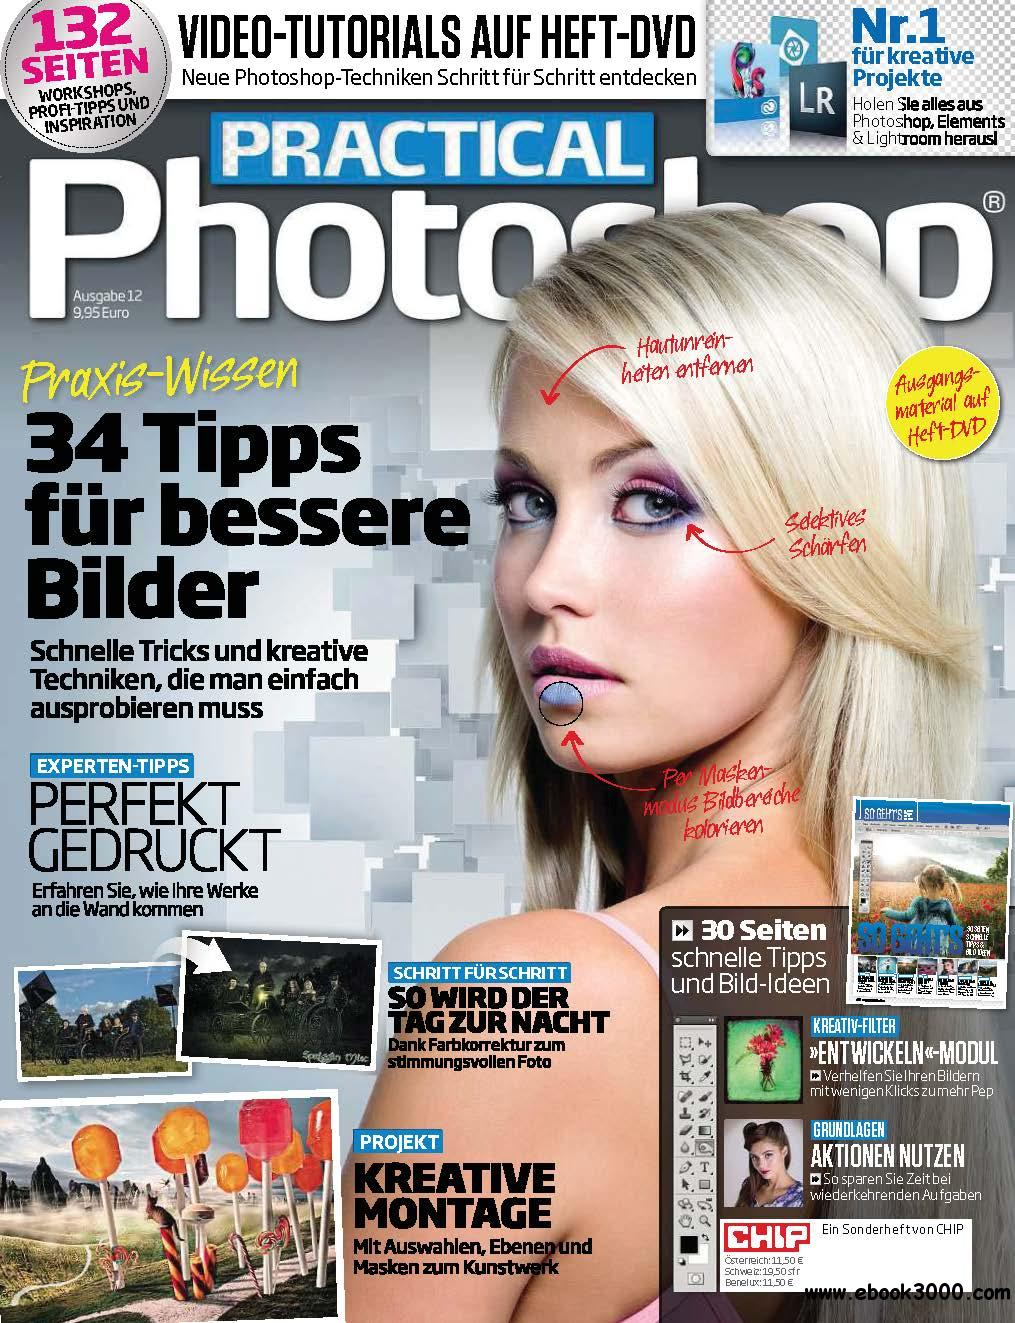 CHIP Sonderheft: Practical Photoshop Dezember 12/2013 free download